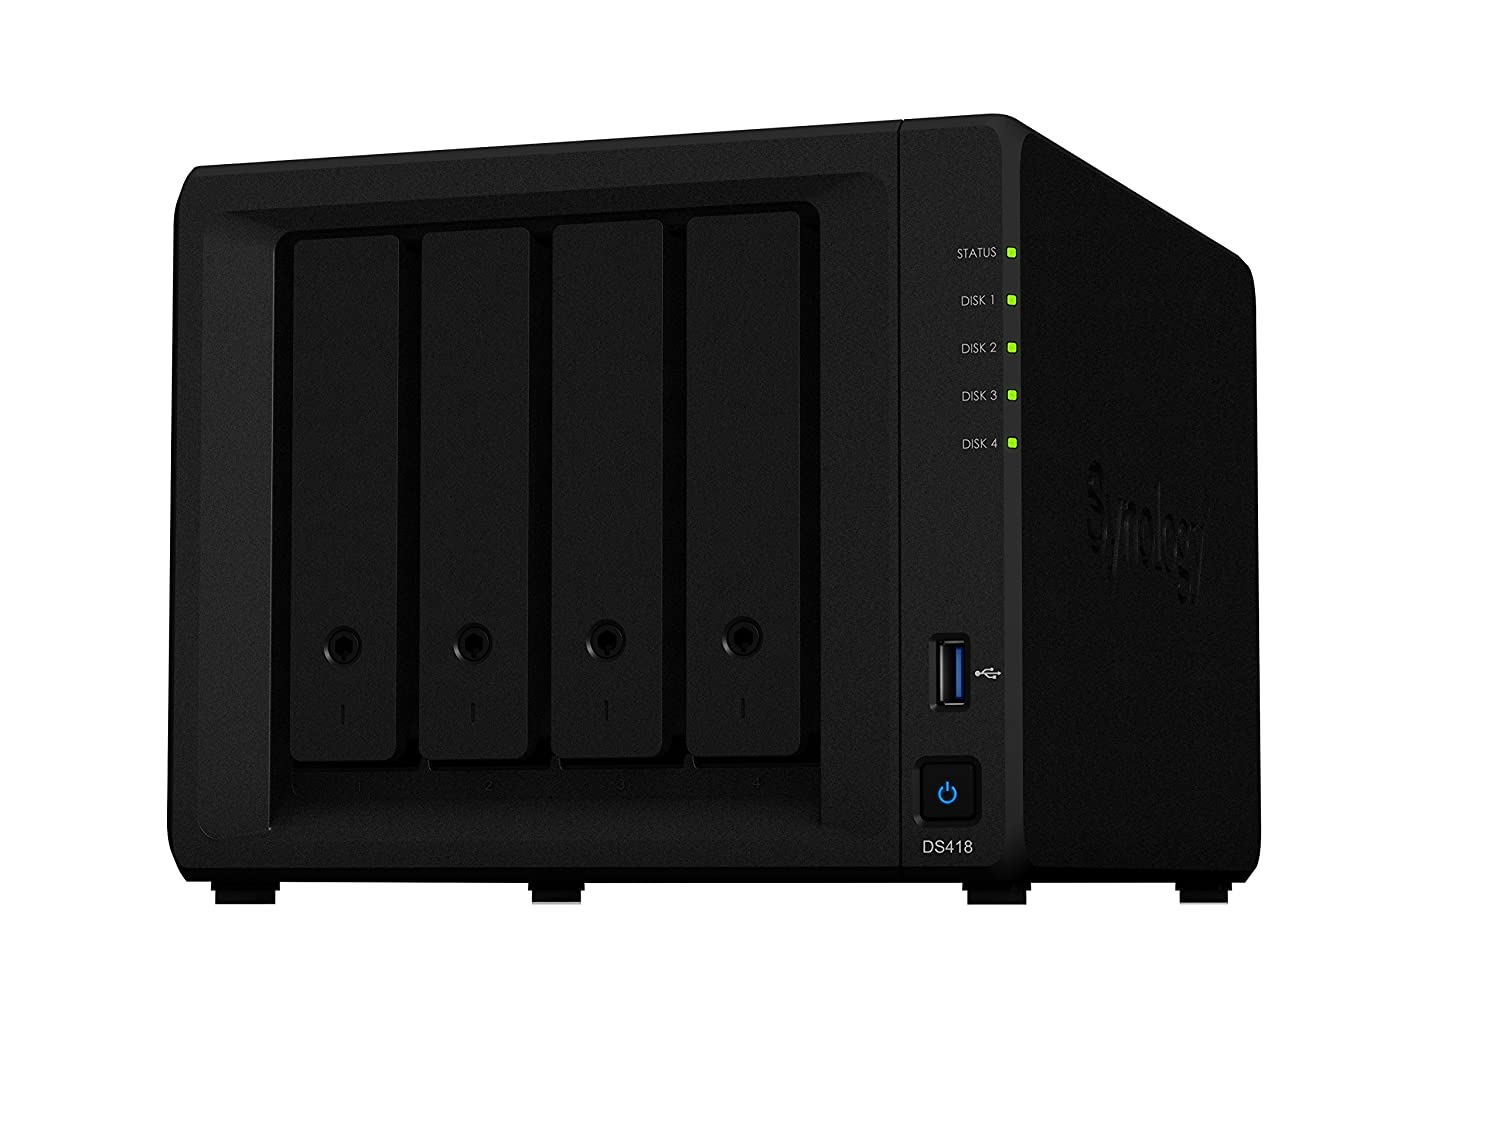 Synology DiskStation DS418 - Unidad Raid (8 TB, 2000 GB, DiskStation Manager)